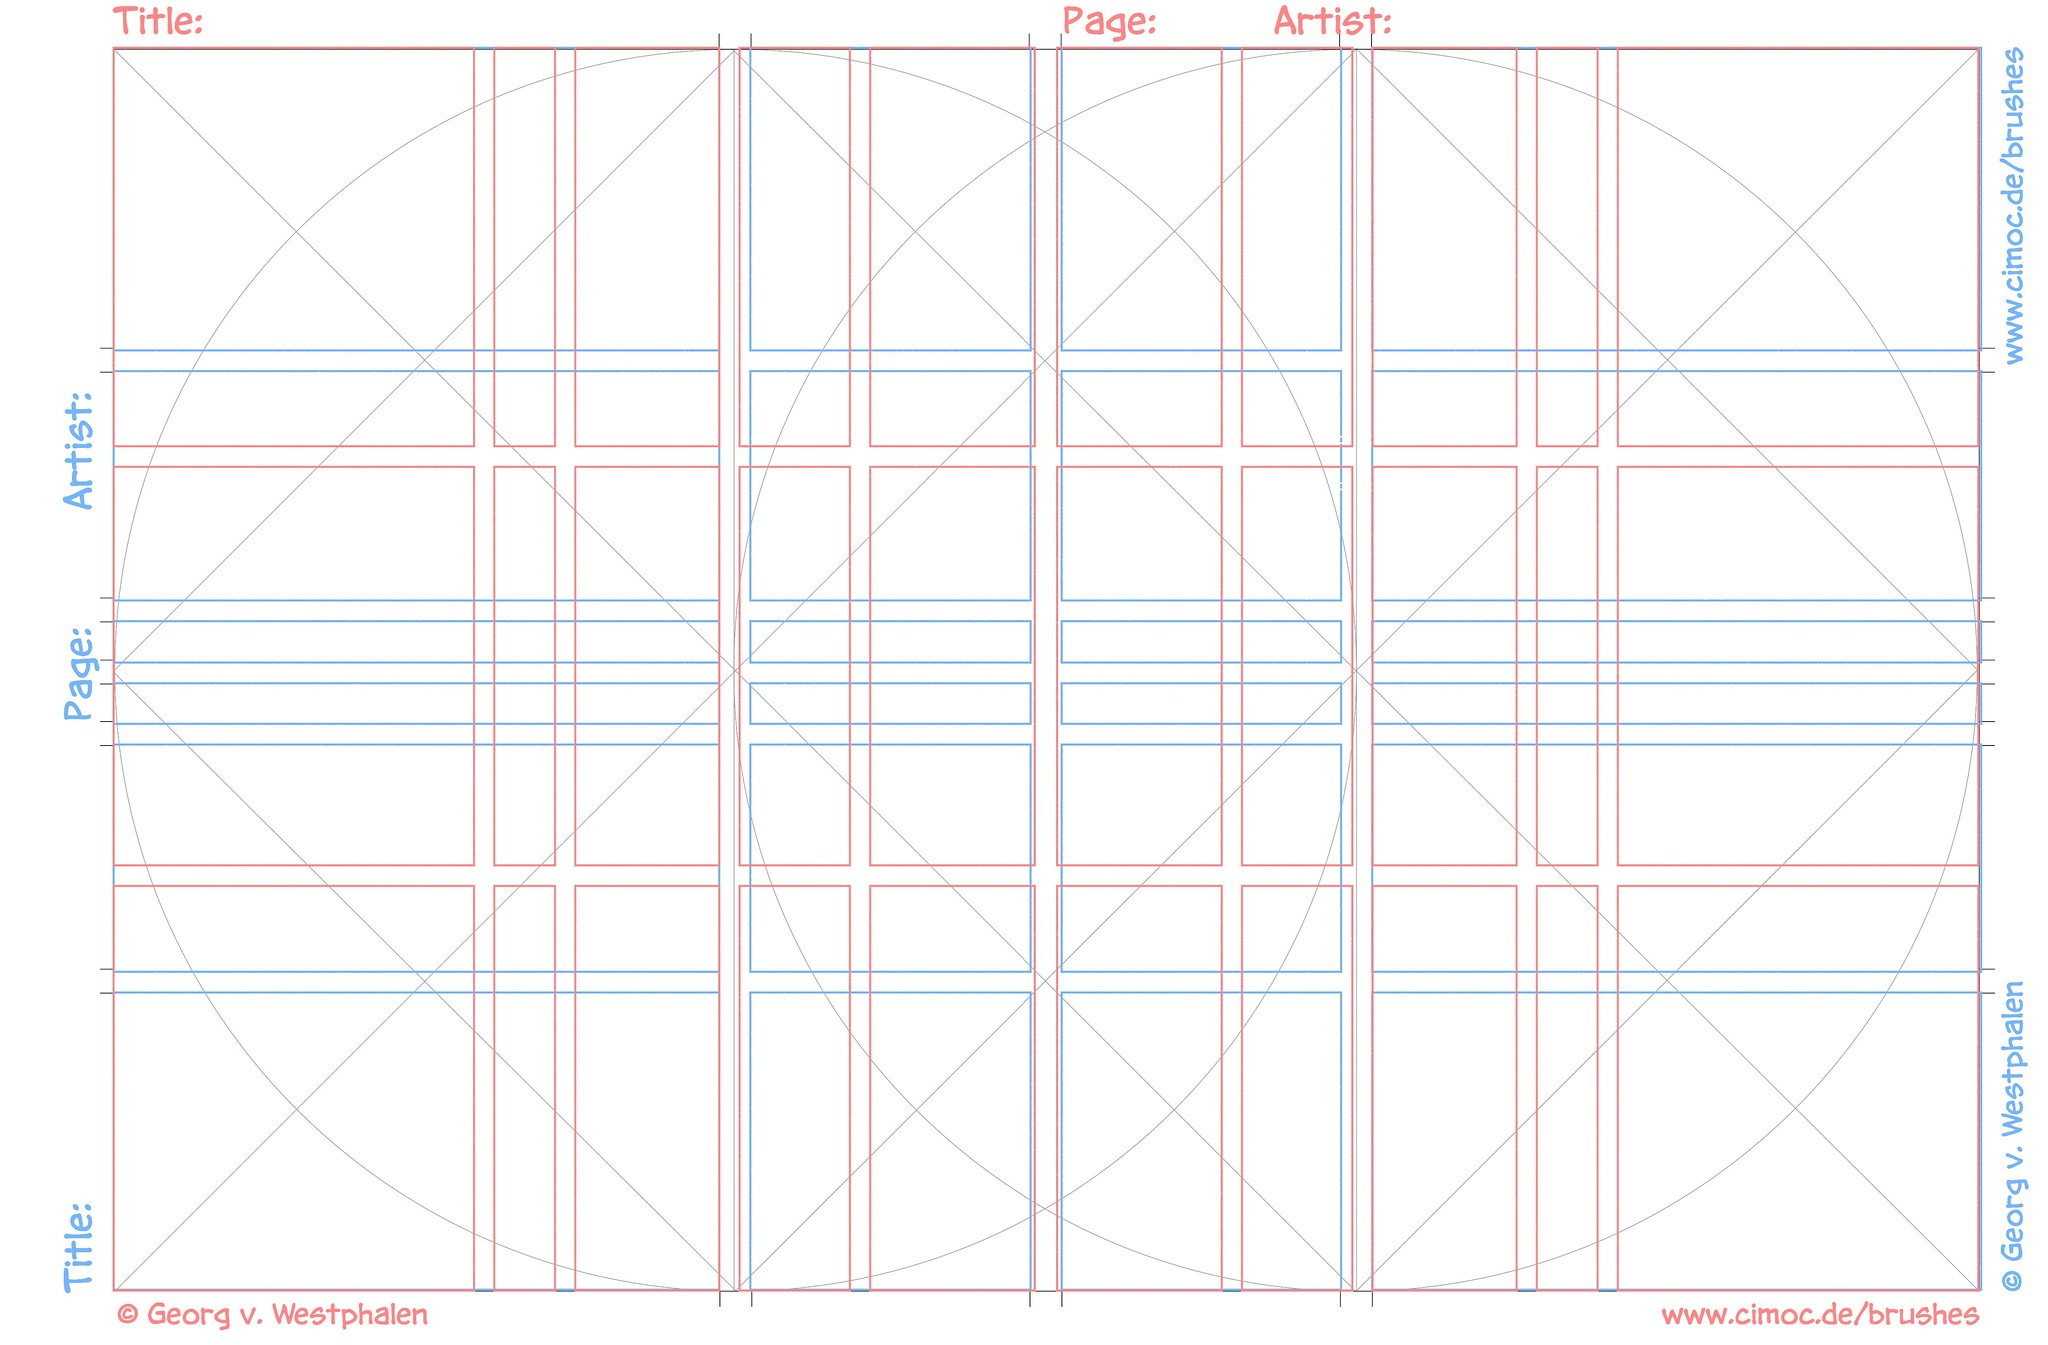 georg s comic panel layout templates